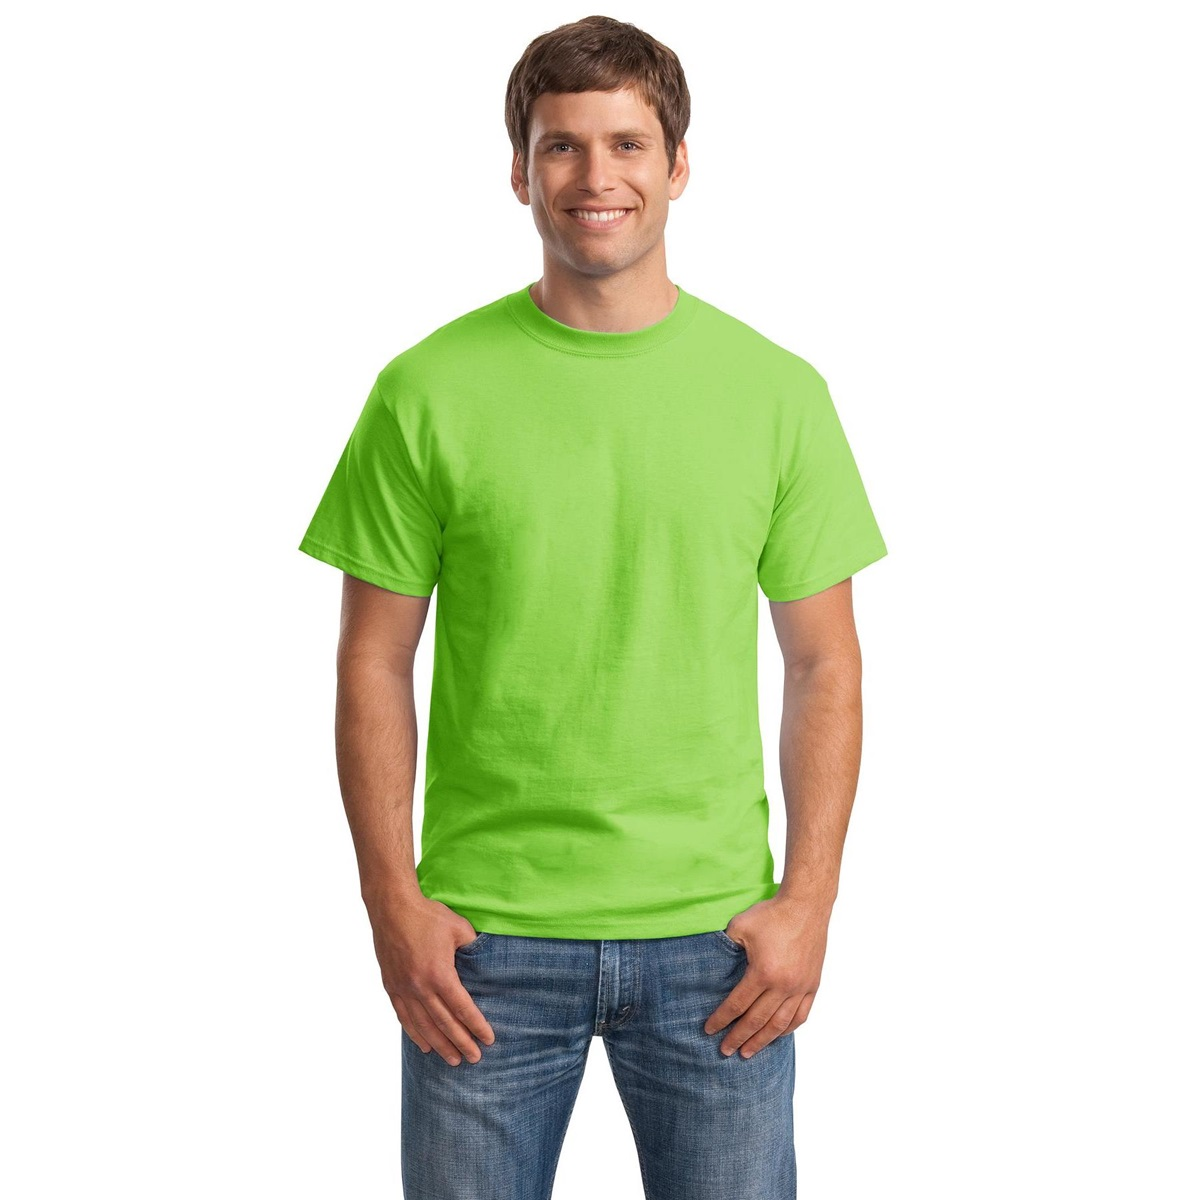 Hanes 5180 Beefy-T Cotton T-Shirt - Lime